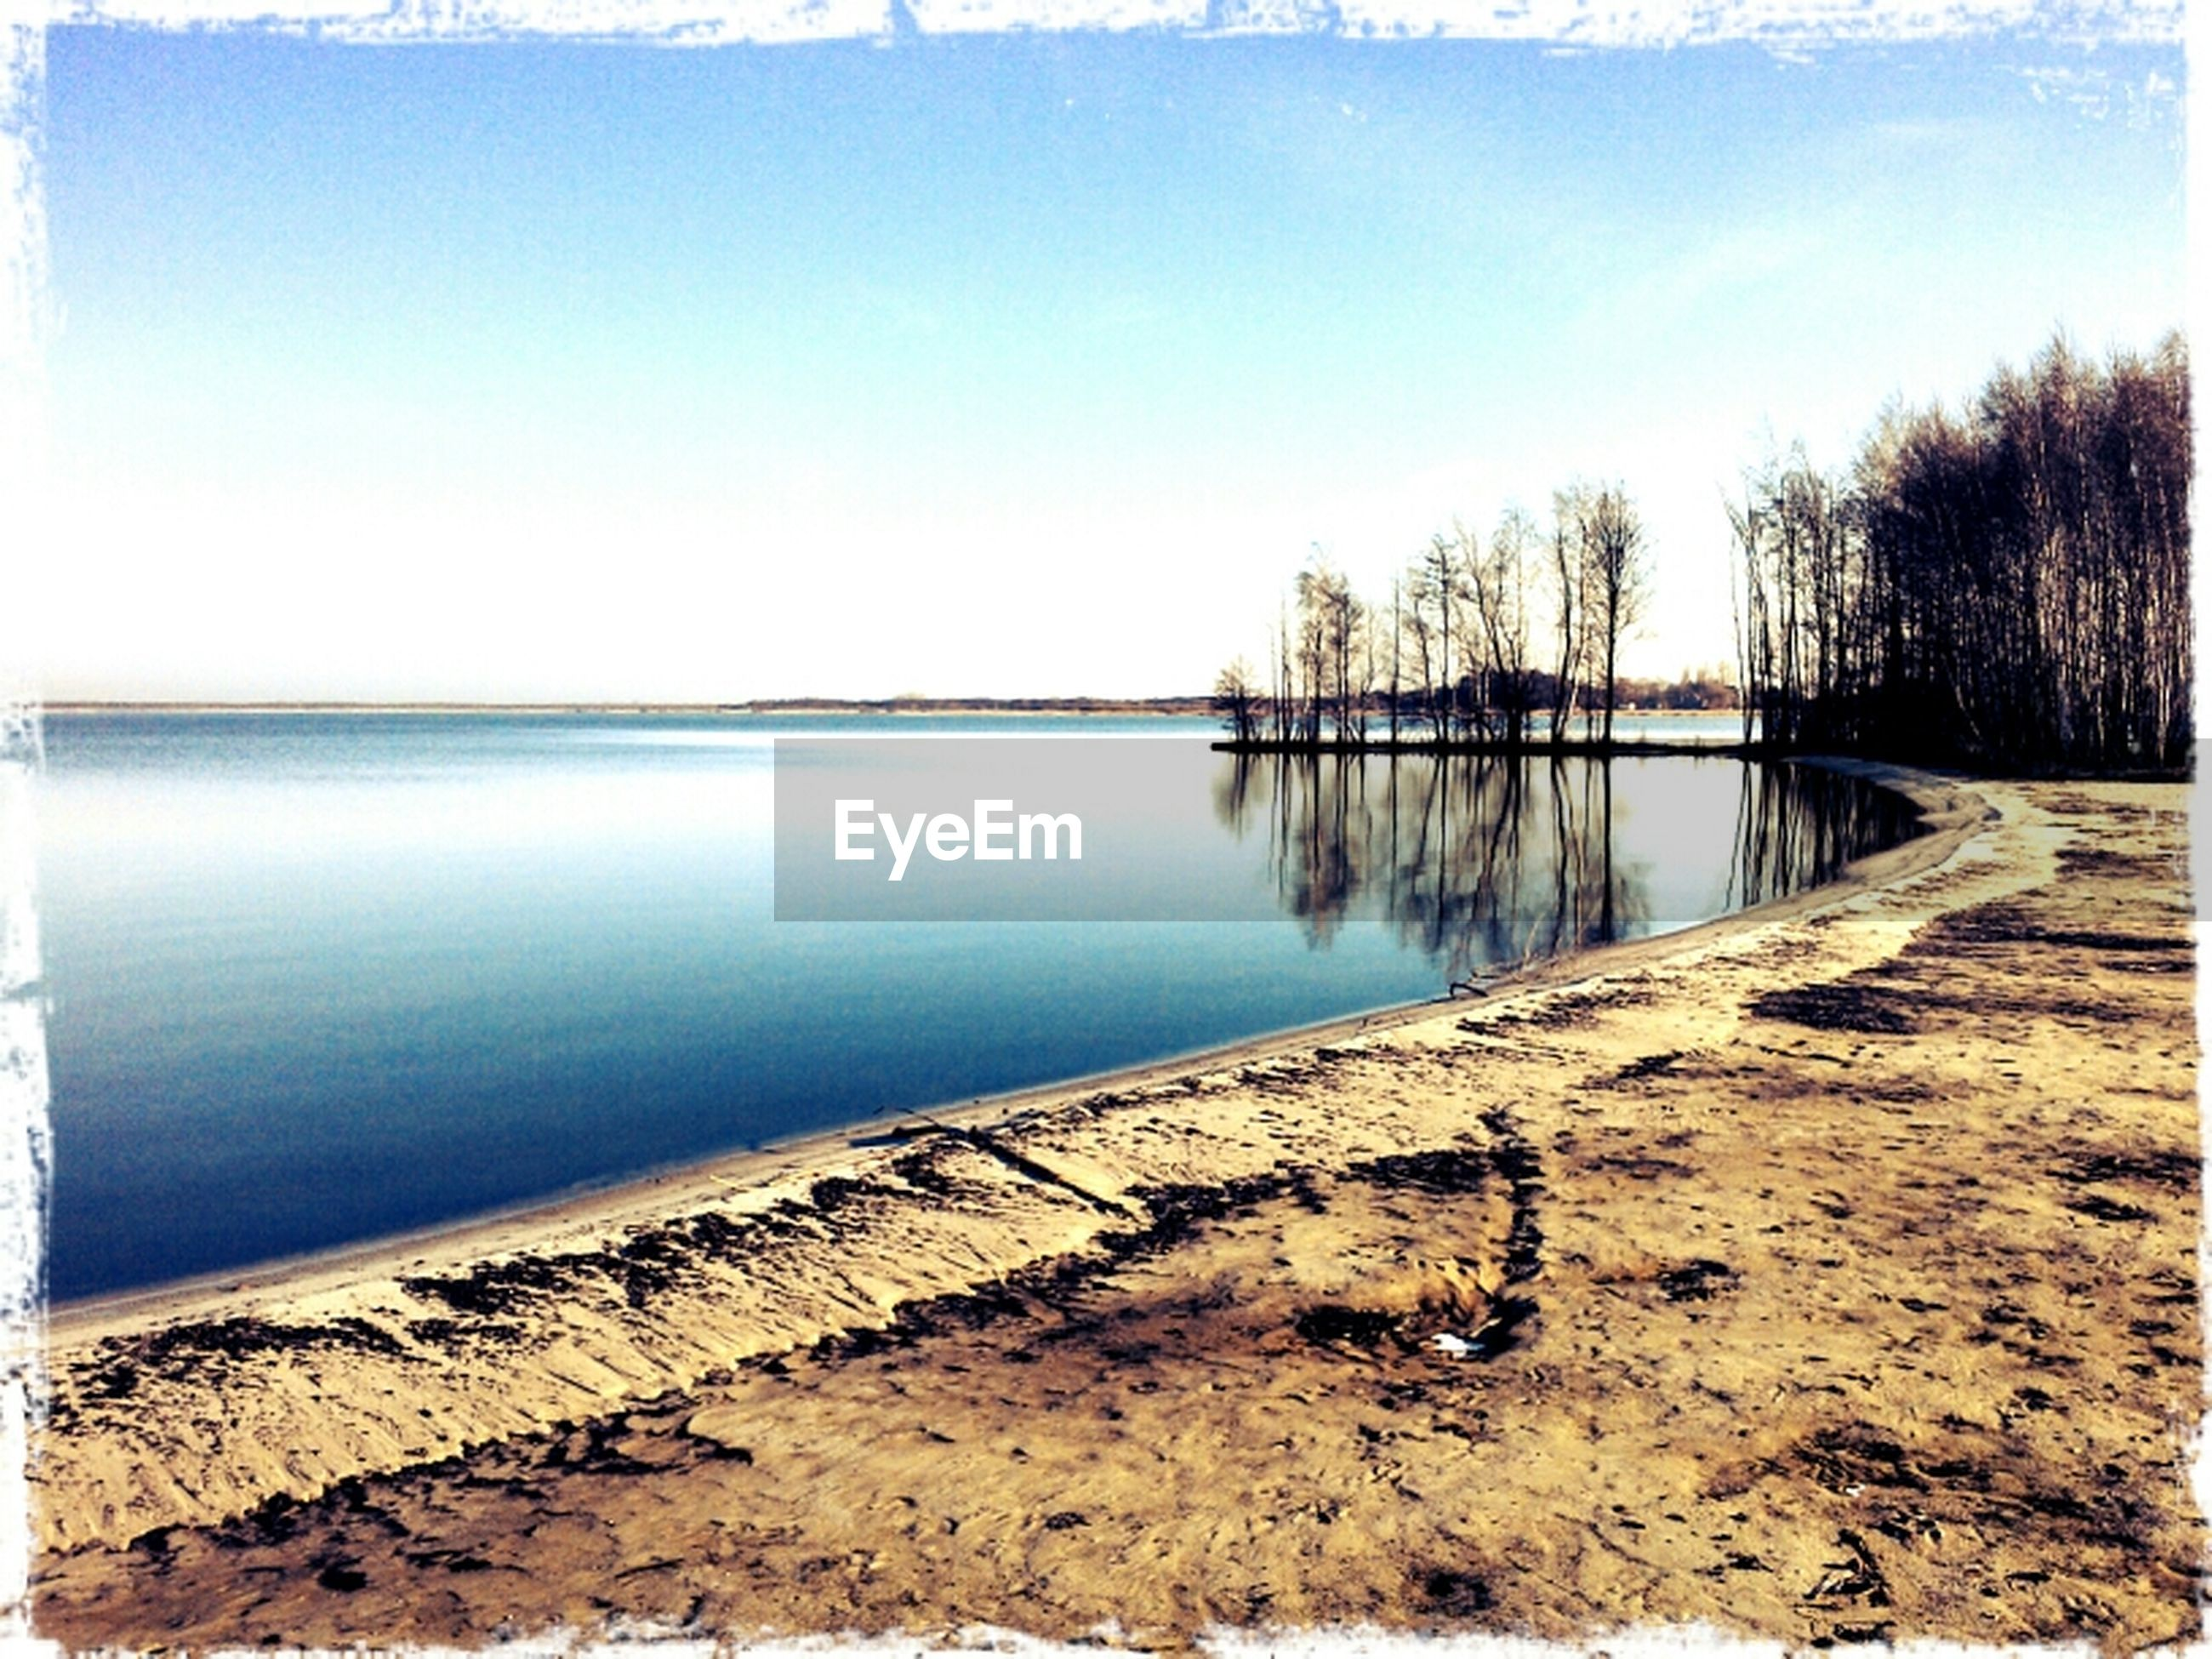 water, tranquility, tranquil scene, transfer print, scenics, sky, tree, auto post production filter, beauty in nature, nature, clear sky, lake, beach, reflection, blue, shore, sea, sunlight, day, idyllic